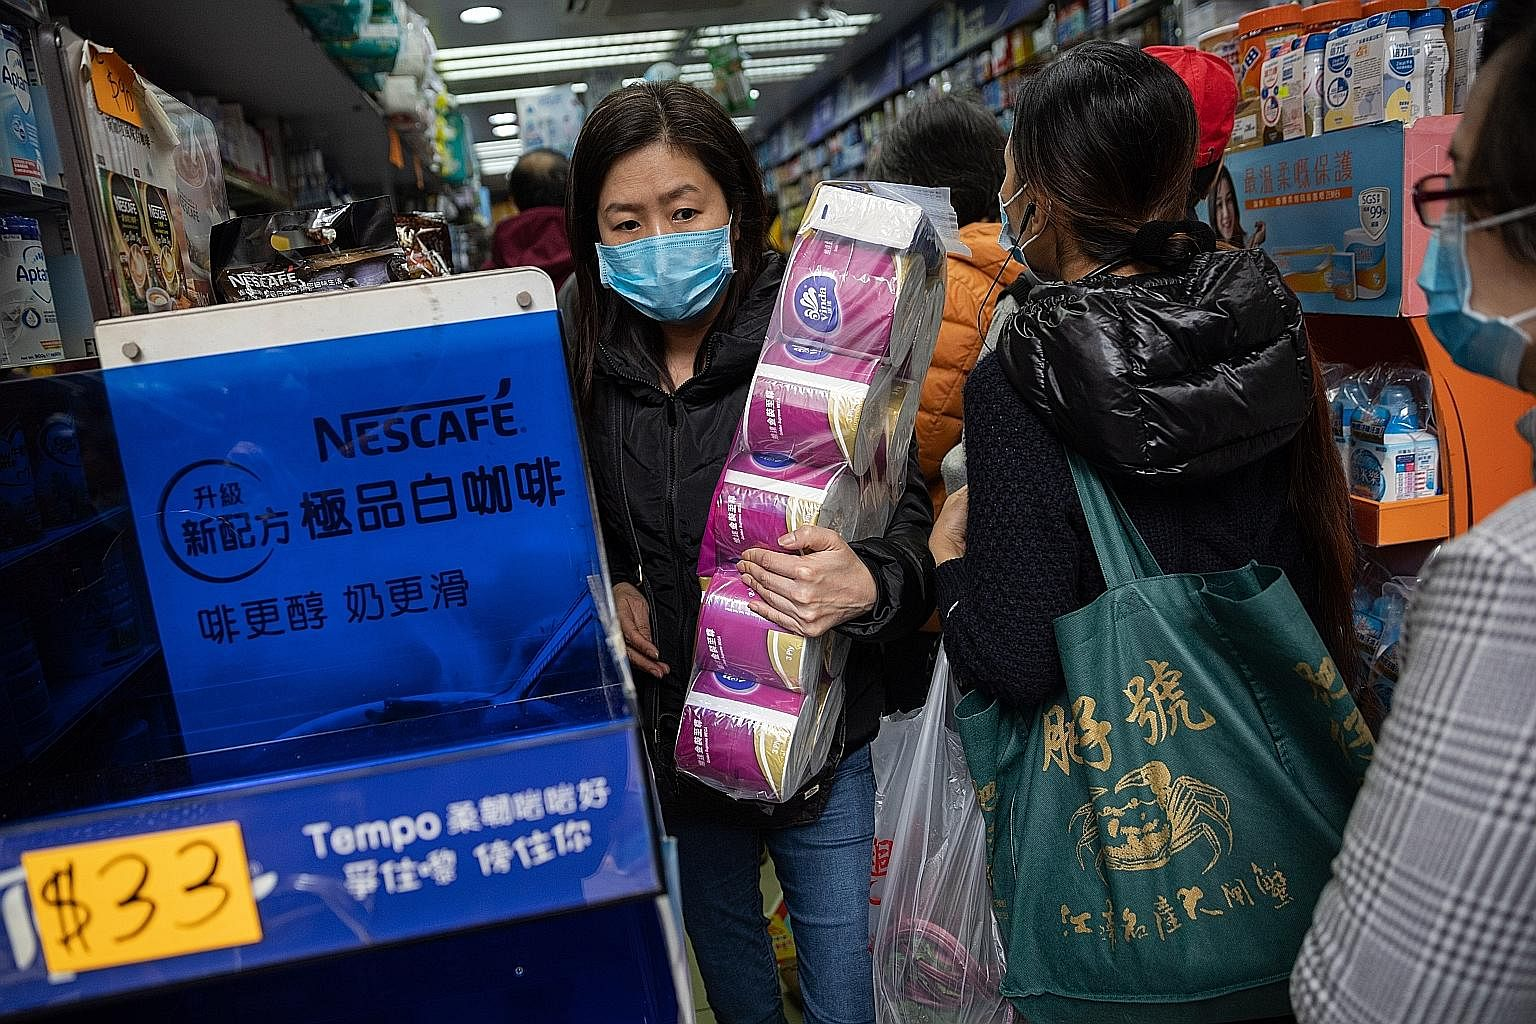 A shopper stocking up on toilet paper at a drugstore in Hong Kong. Threats that feel out of control, like a runaway illness outbreak, lead people to seek ways to re-impose control, for instance by hoarding supplies.